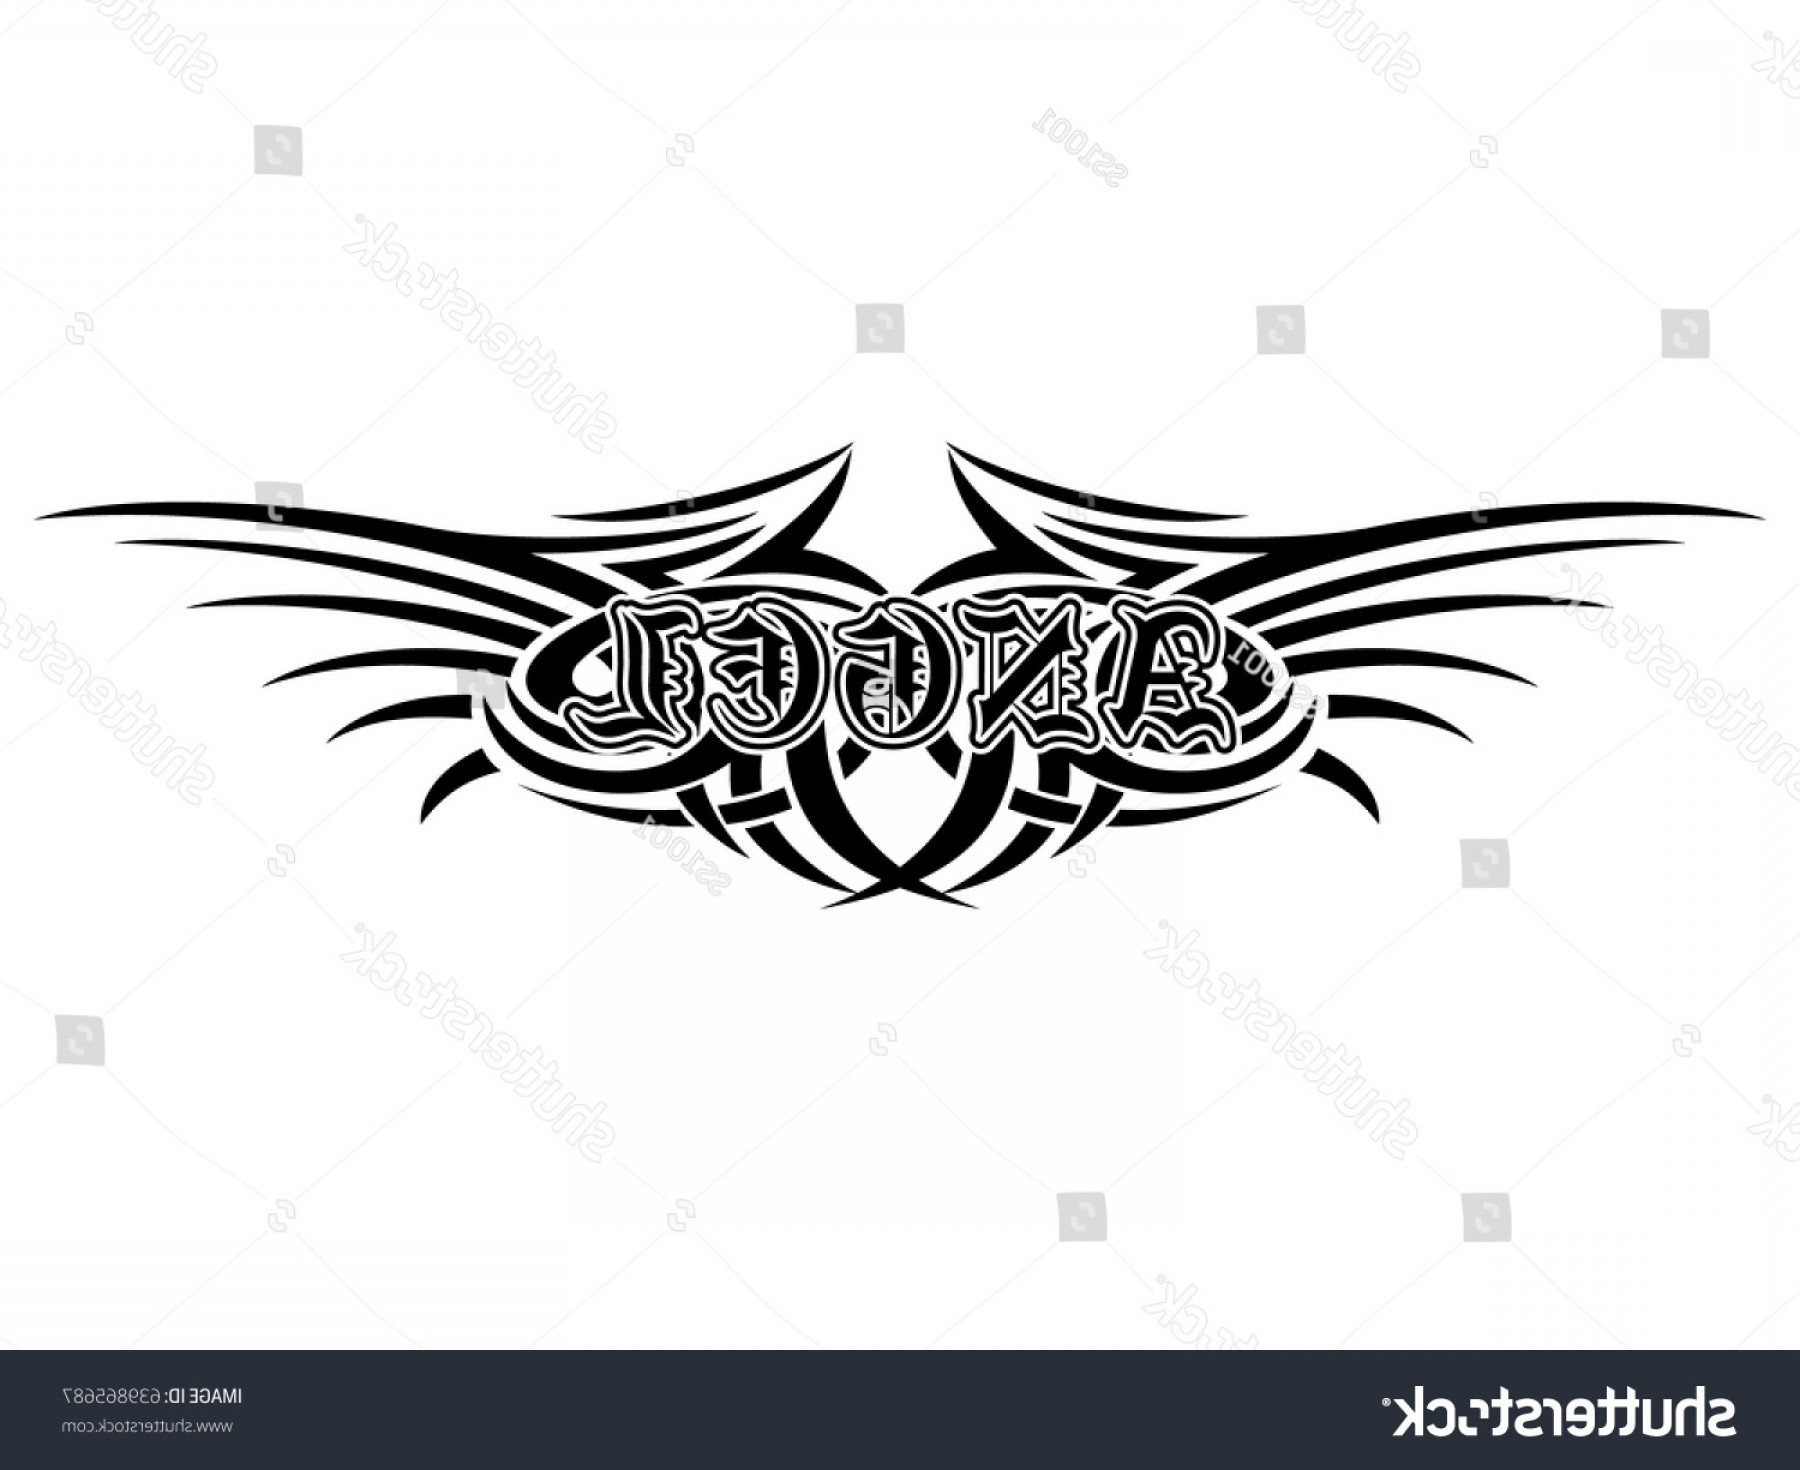 Angel Wings Tattoo Tribal Vector: Abstract Vector Illustration Black White Tribal